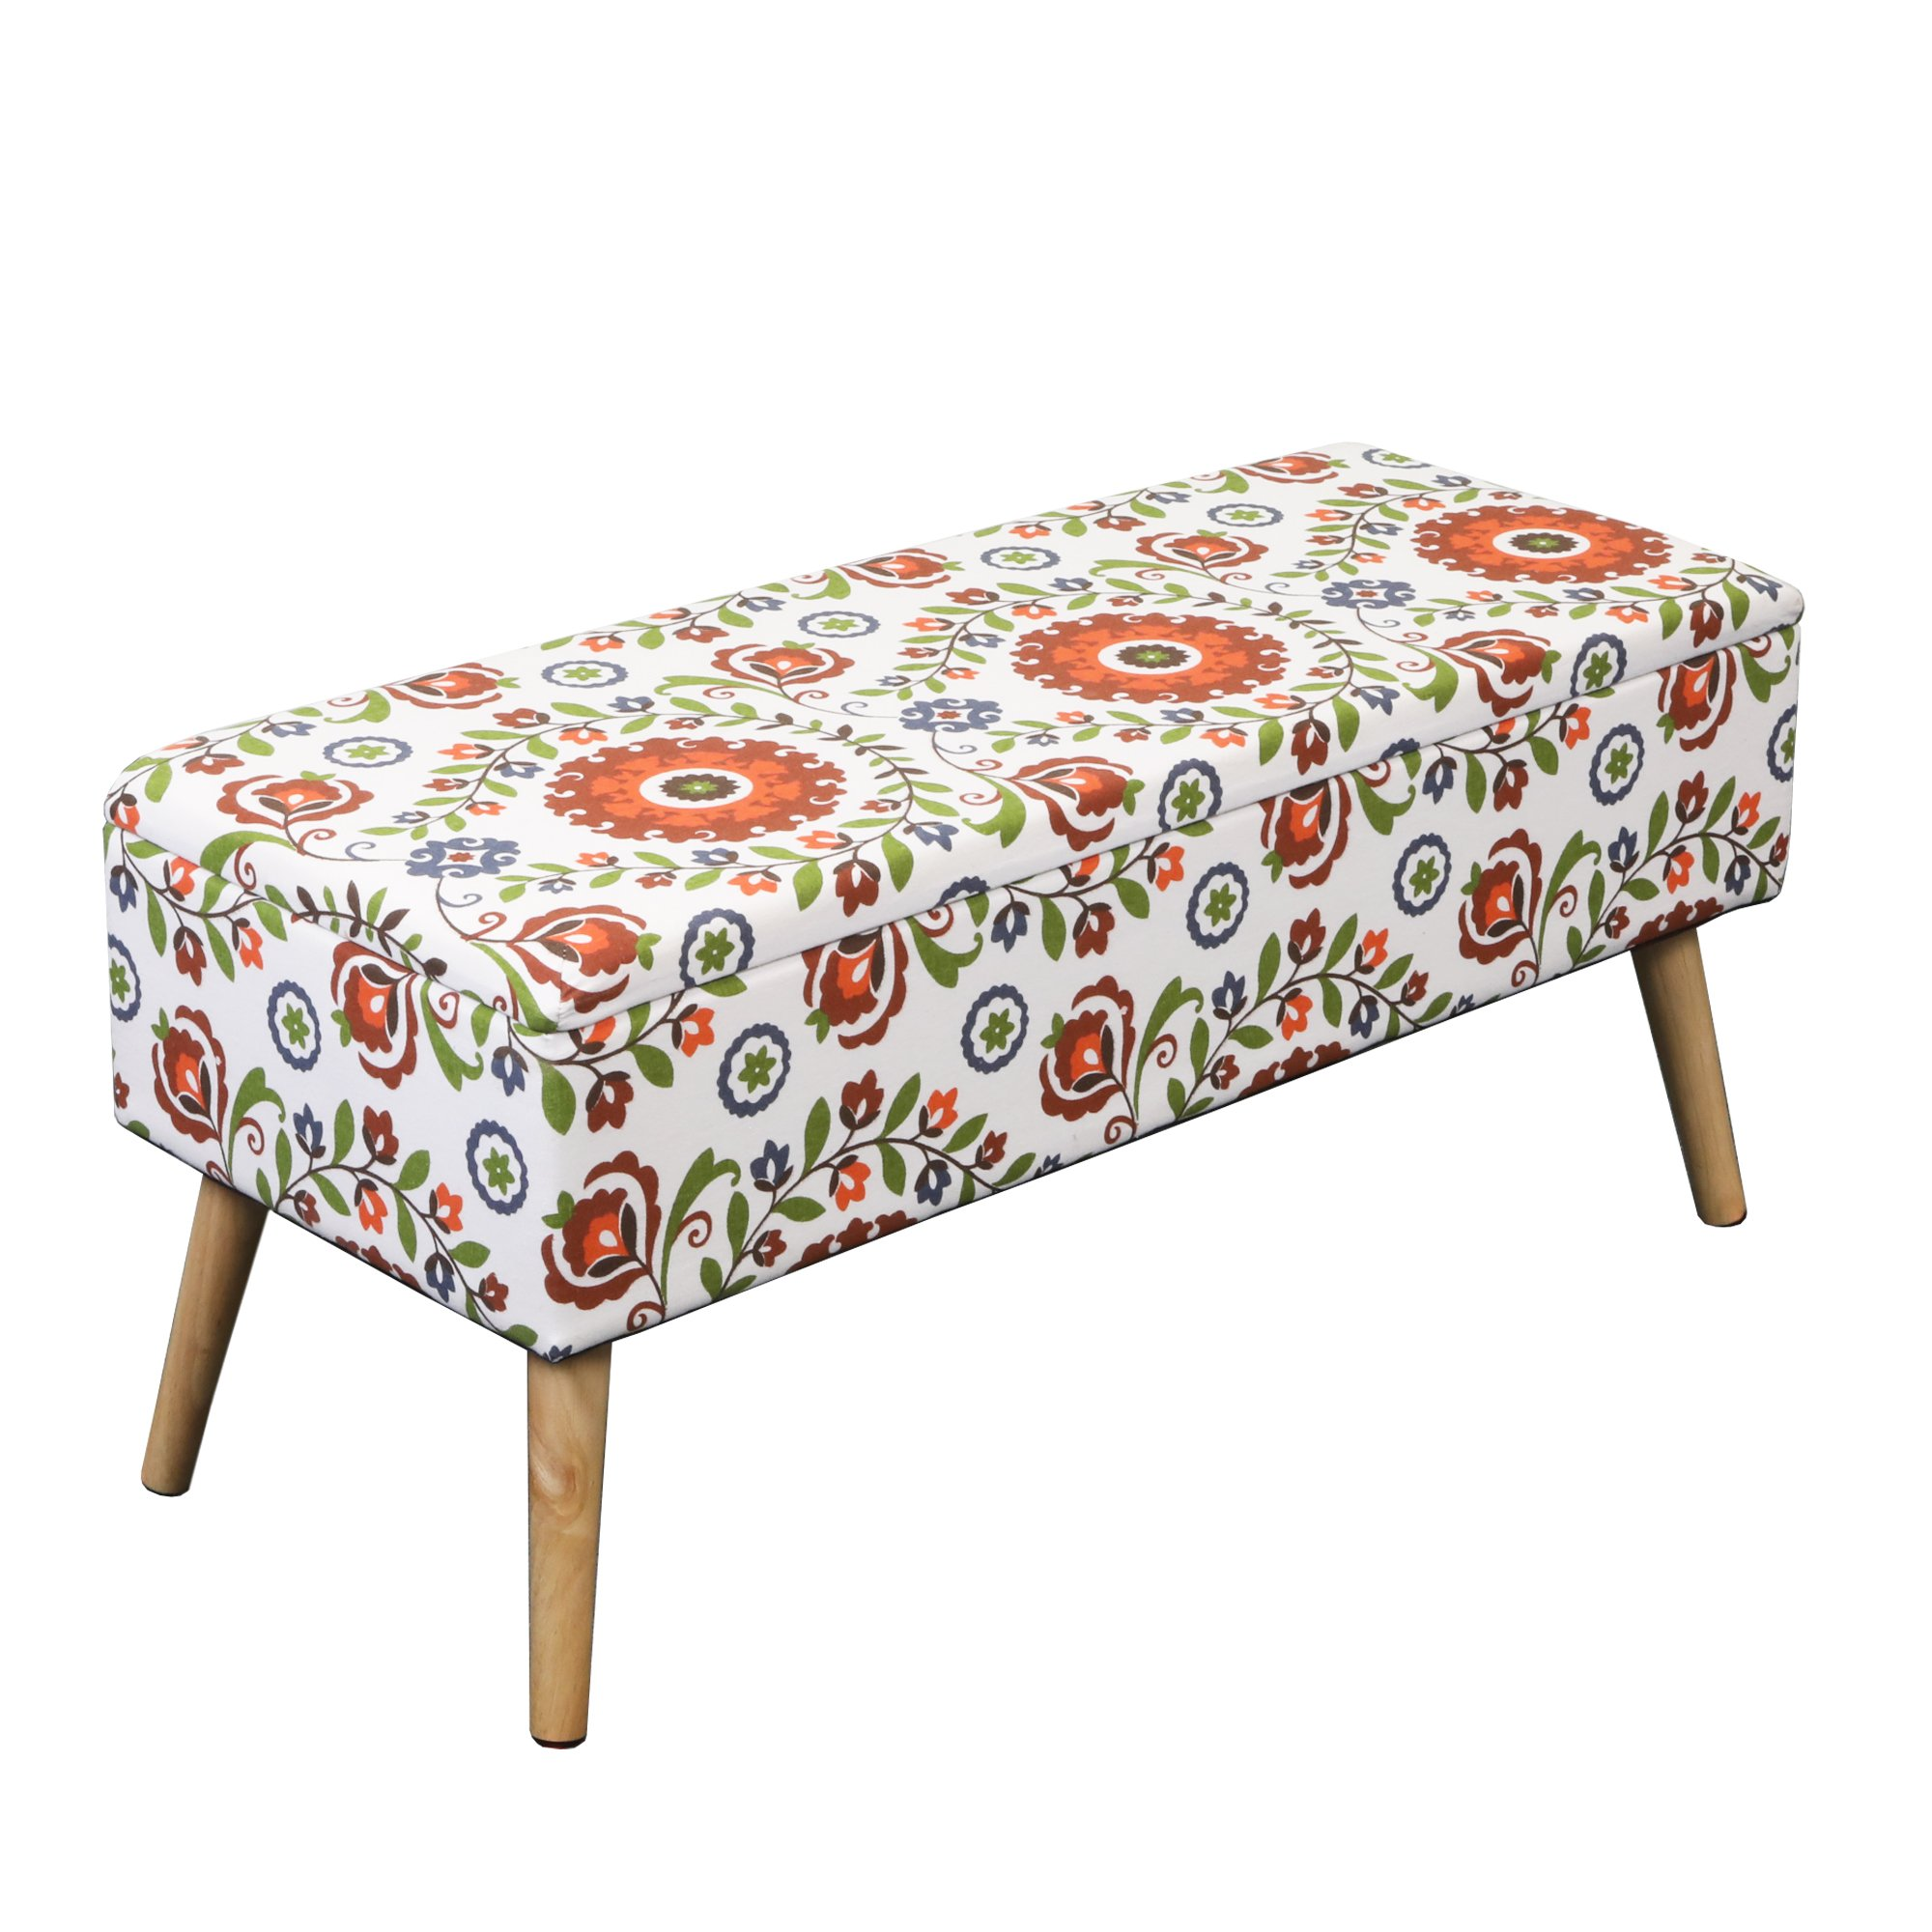 Otto & Ben 37'' Storage Bench - Mid Century Ottoman with EASY LIFT Top, Upholstered Shoe Ottomans Seats for Entryway and Bedroom, Retro Floral